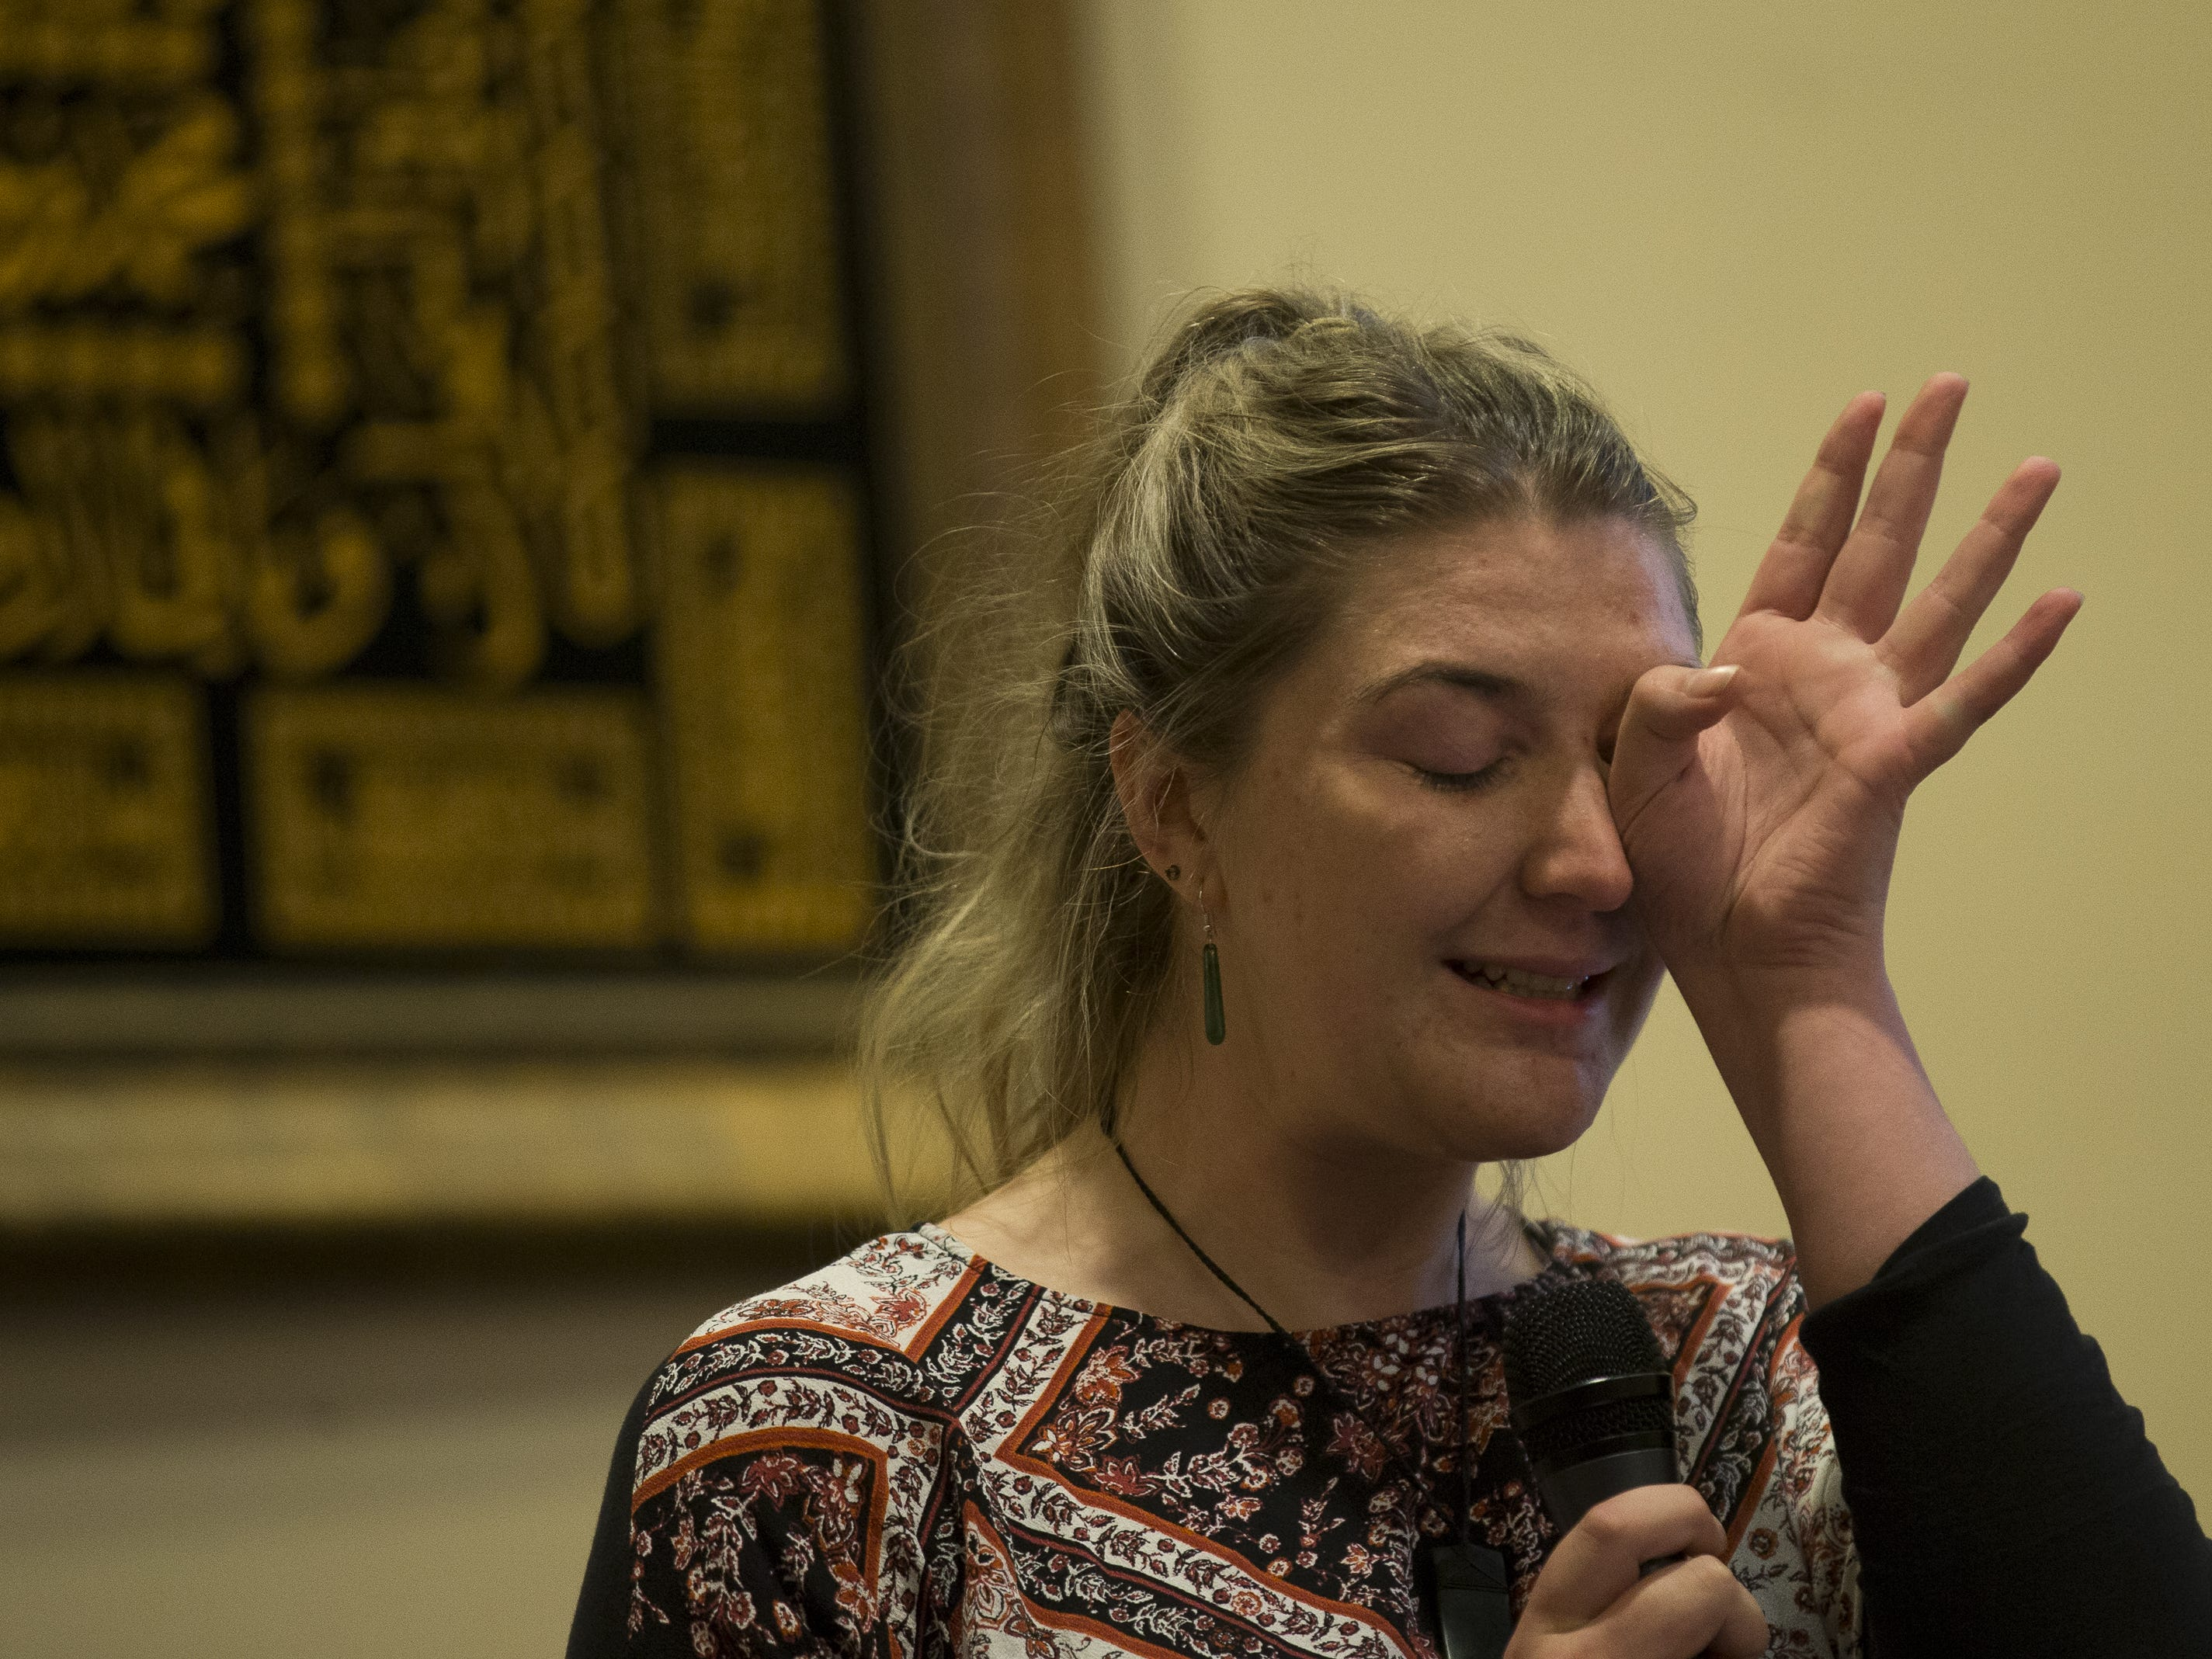 New Zealander Ema Carol speaks at a vigil held at the Islamic Center of Northeast Valley in Scottsdale, Ariz., on Sunday, March 17, 2019, in memory of the Christchurch New Zealand shooting victims.